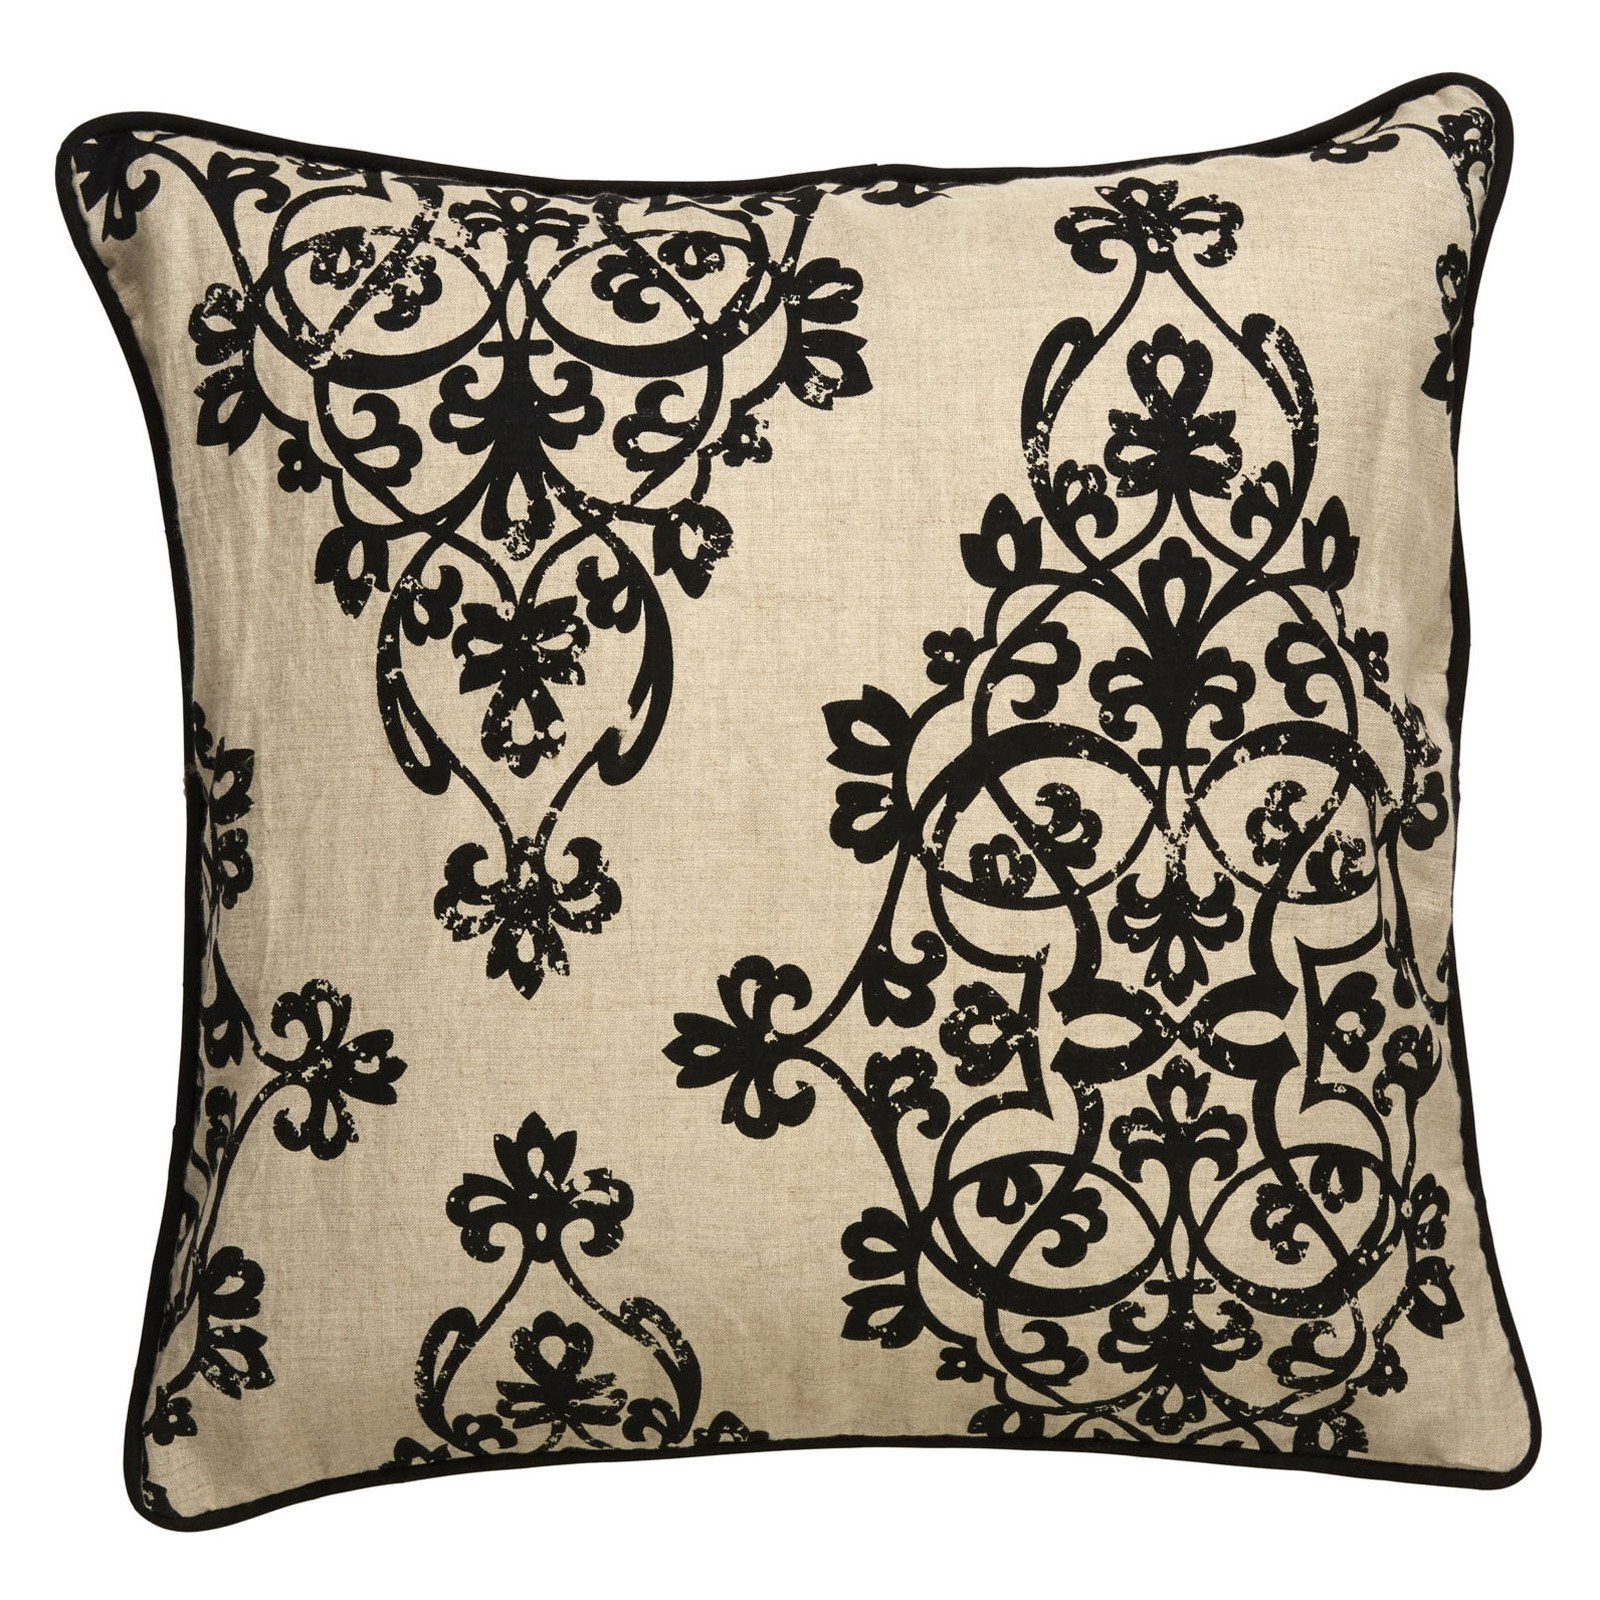 Jaipur scroll linen and polyester decorative pillow black